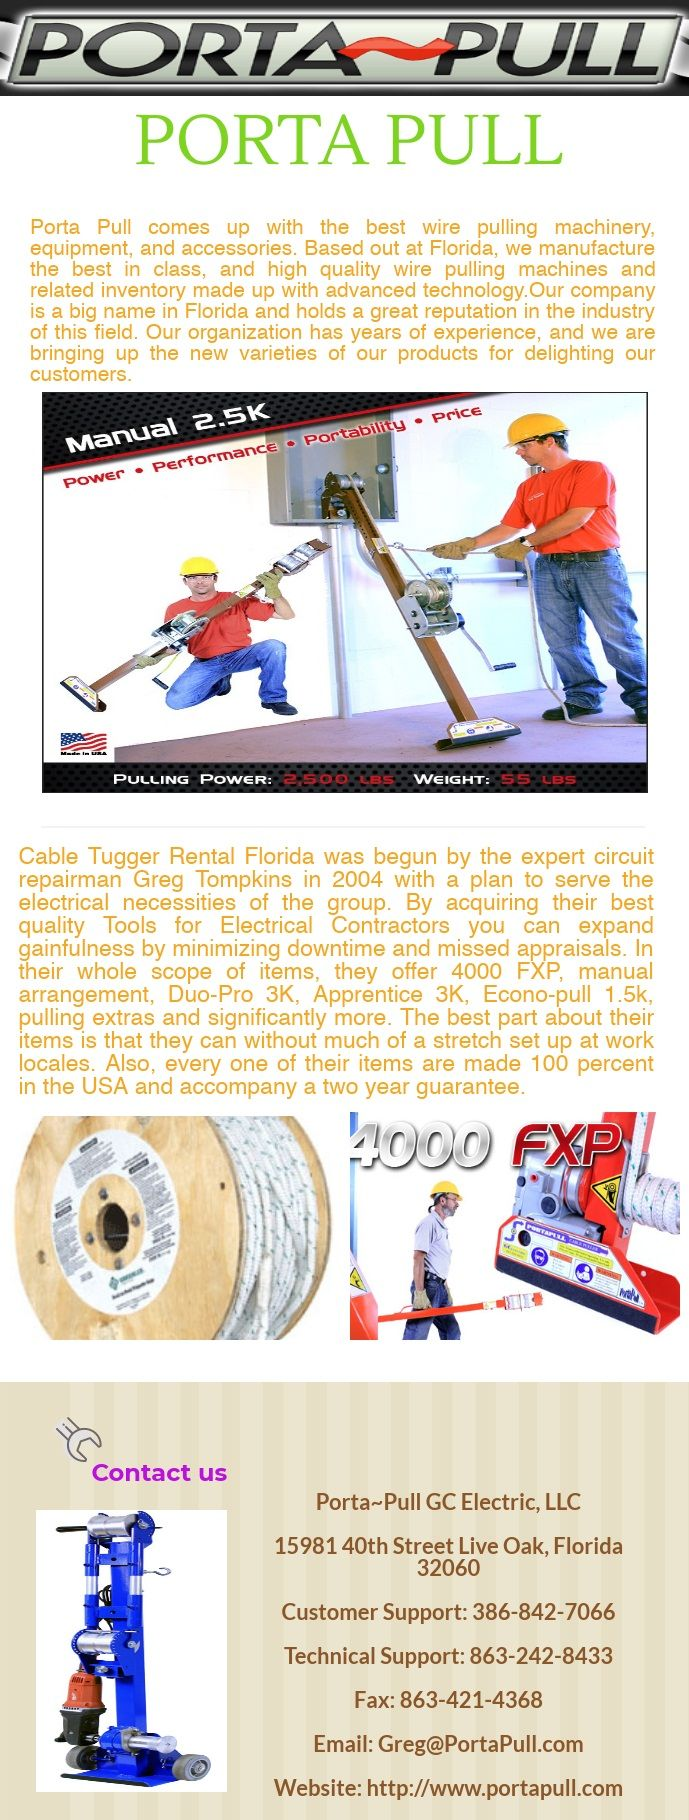 Porta Pull comes up with the best wire pulling machinery, equipment ...